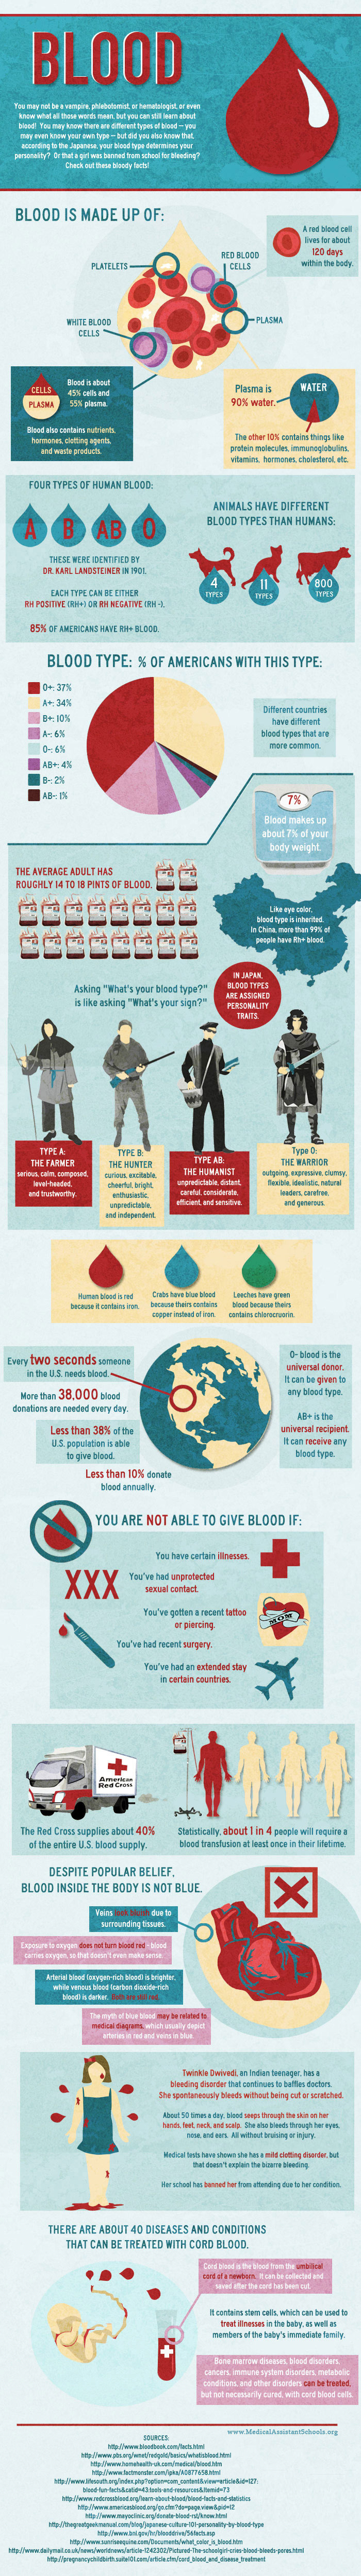 Facts About Blood [Infographic]